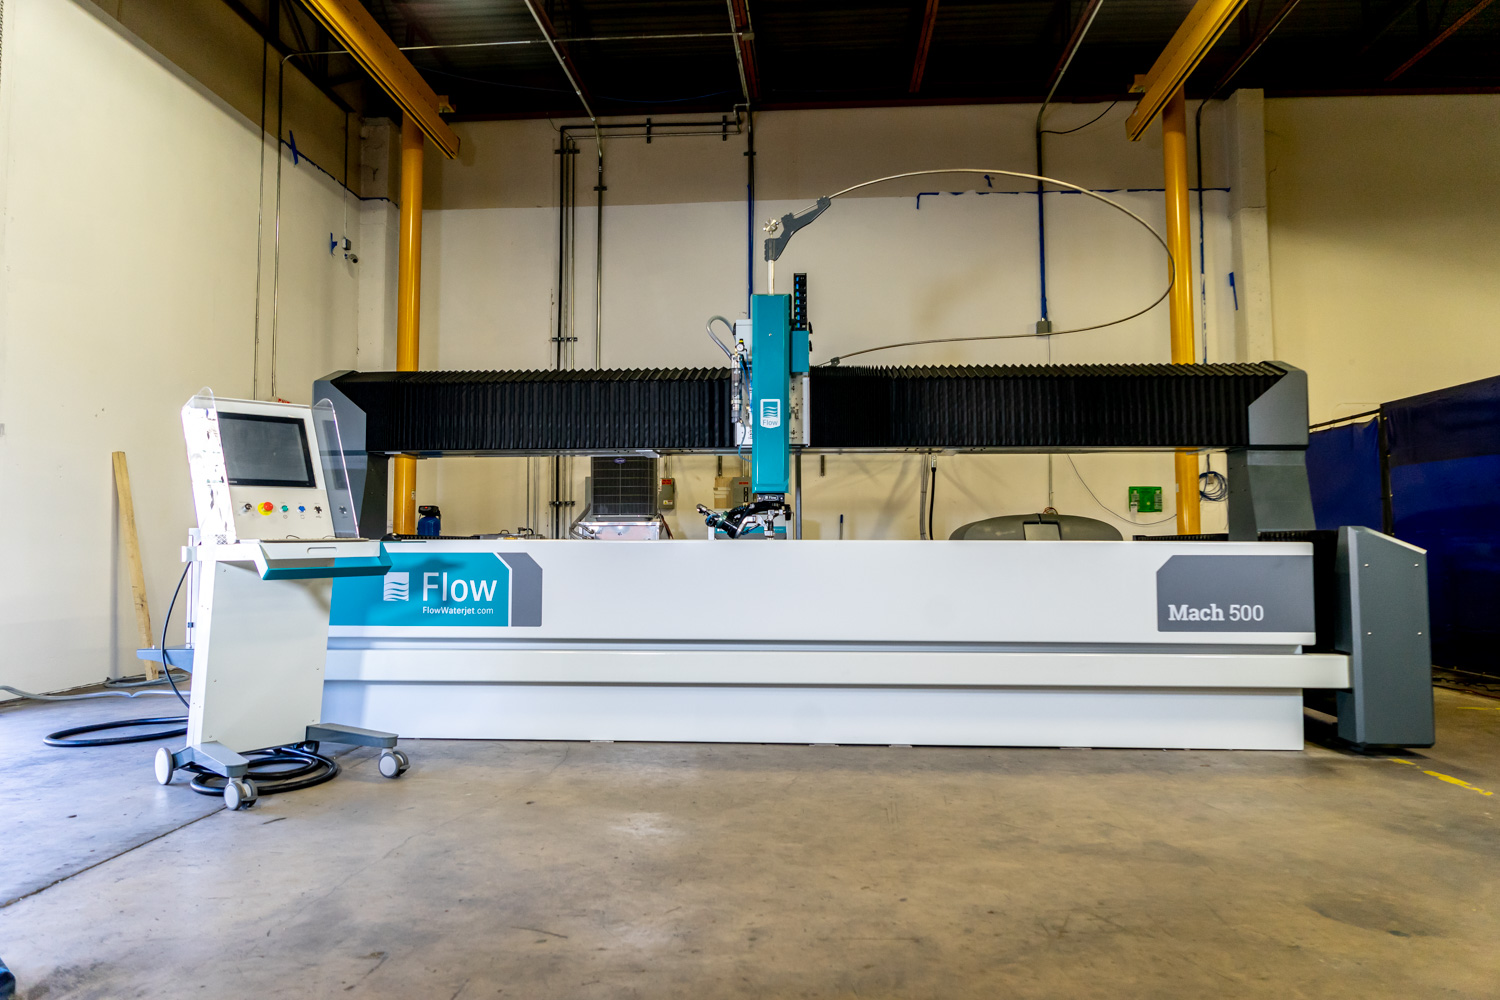 Flow-Mach-500-Waterjet-Cutting-Services-Express-Fabrication-San-Antonio-Hi-Res-10